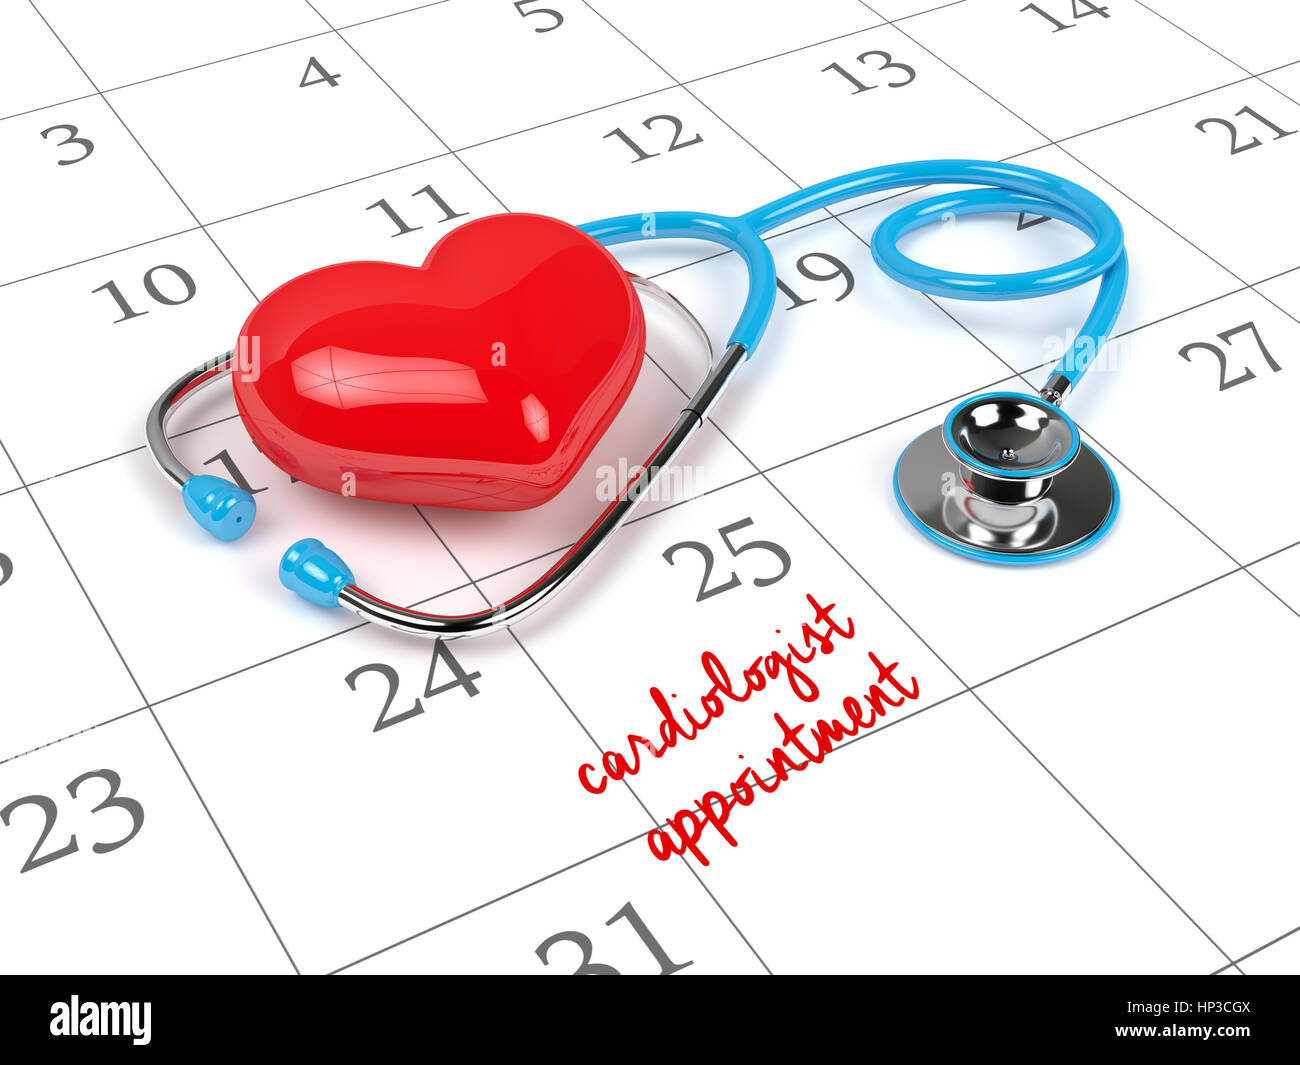 3d rendering of blue stethoscope, calendar and cardiologist appointment note. - Stock Image